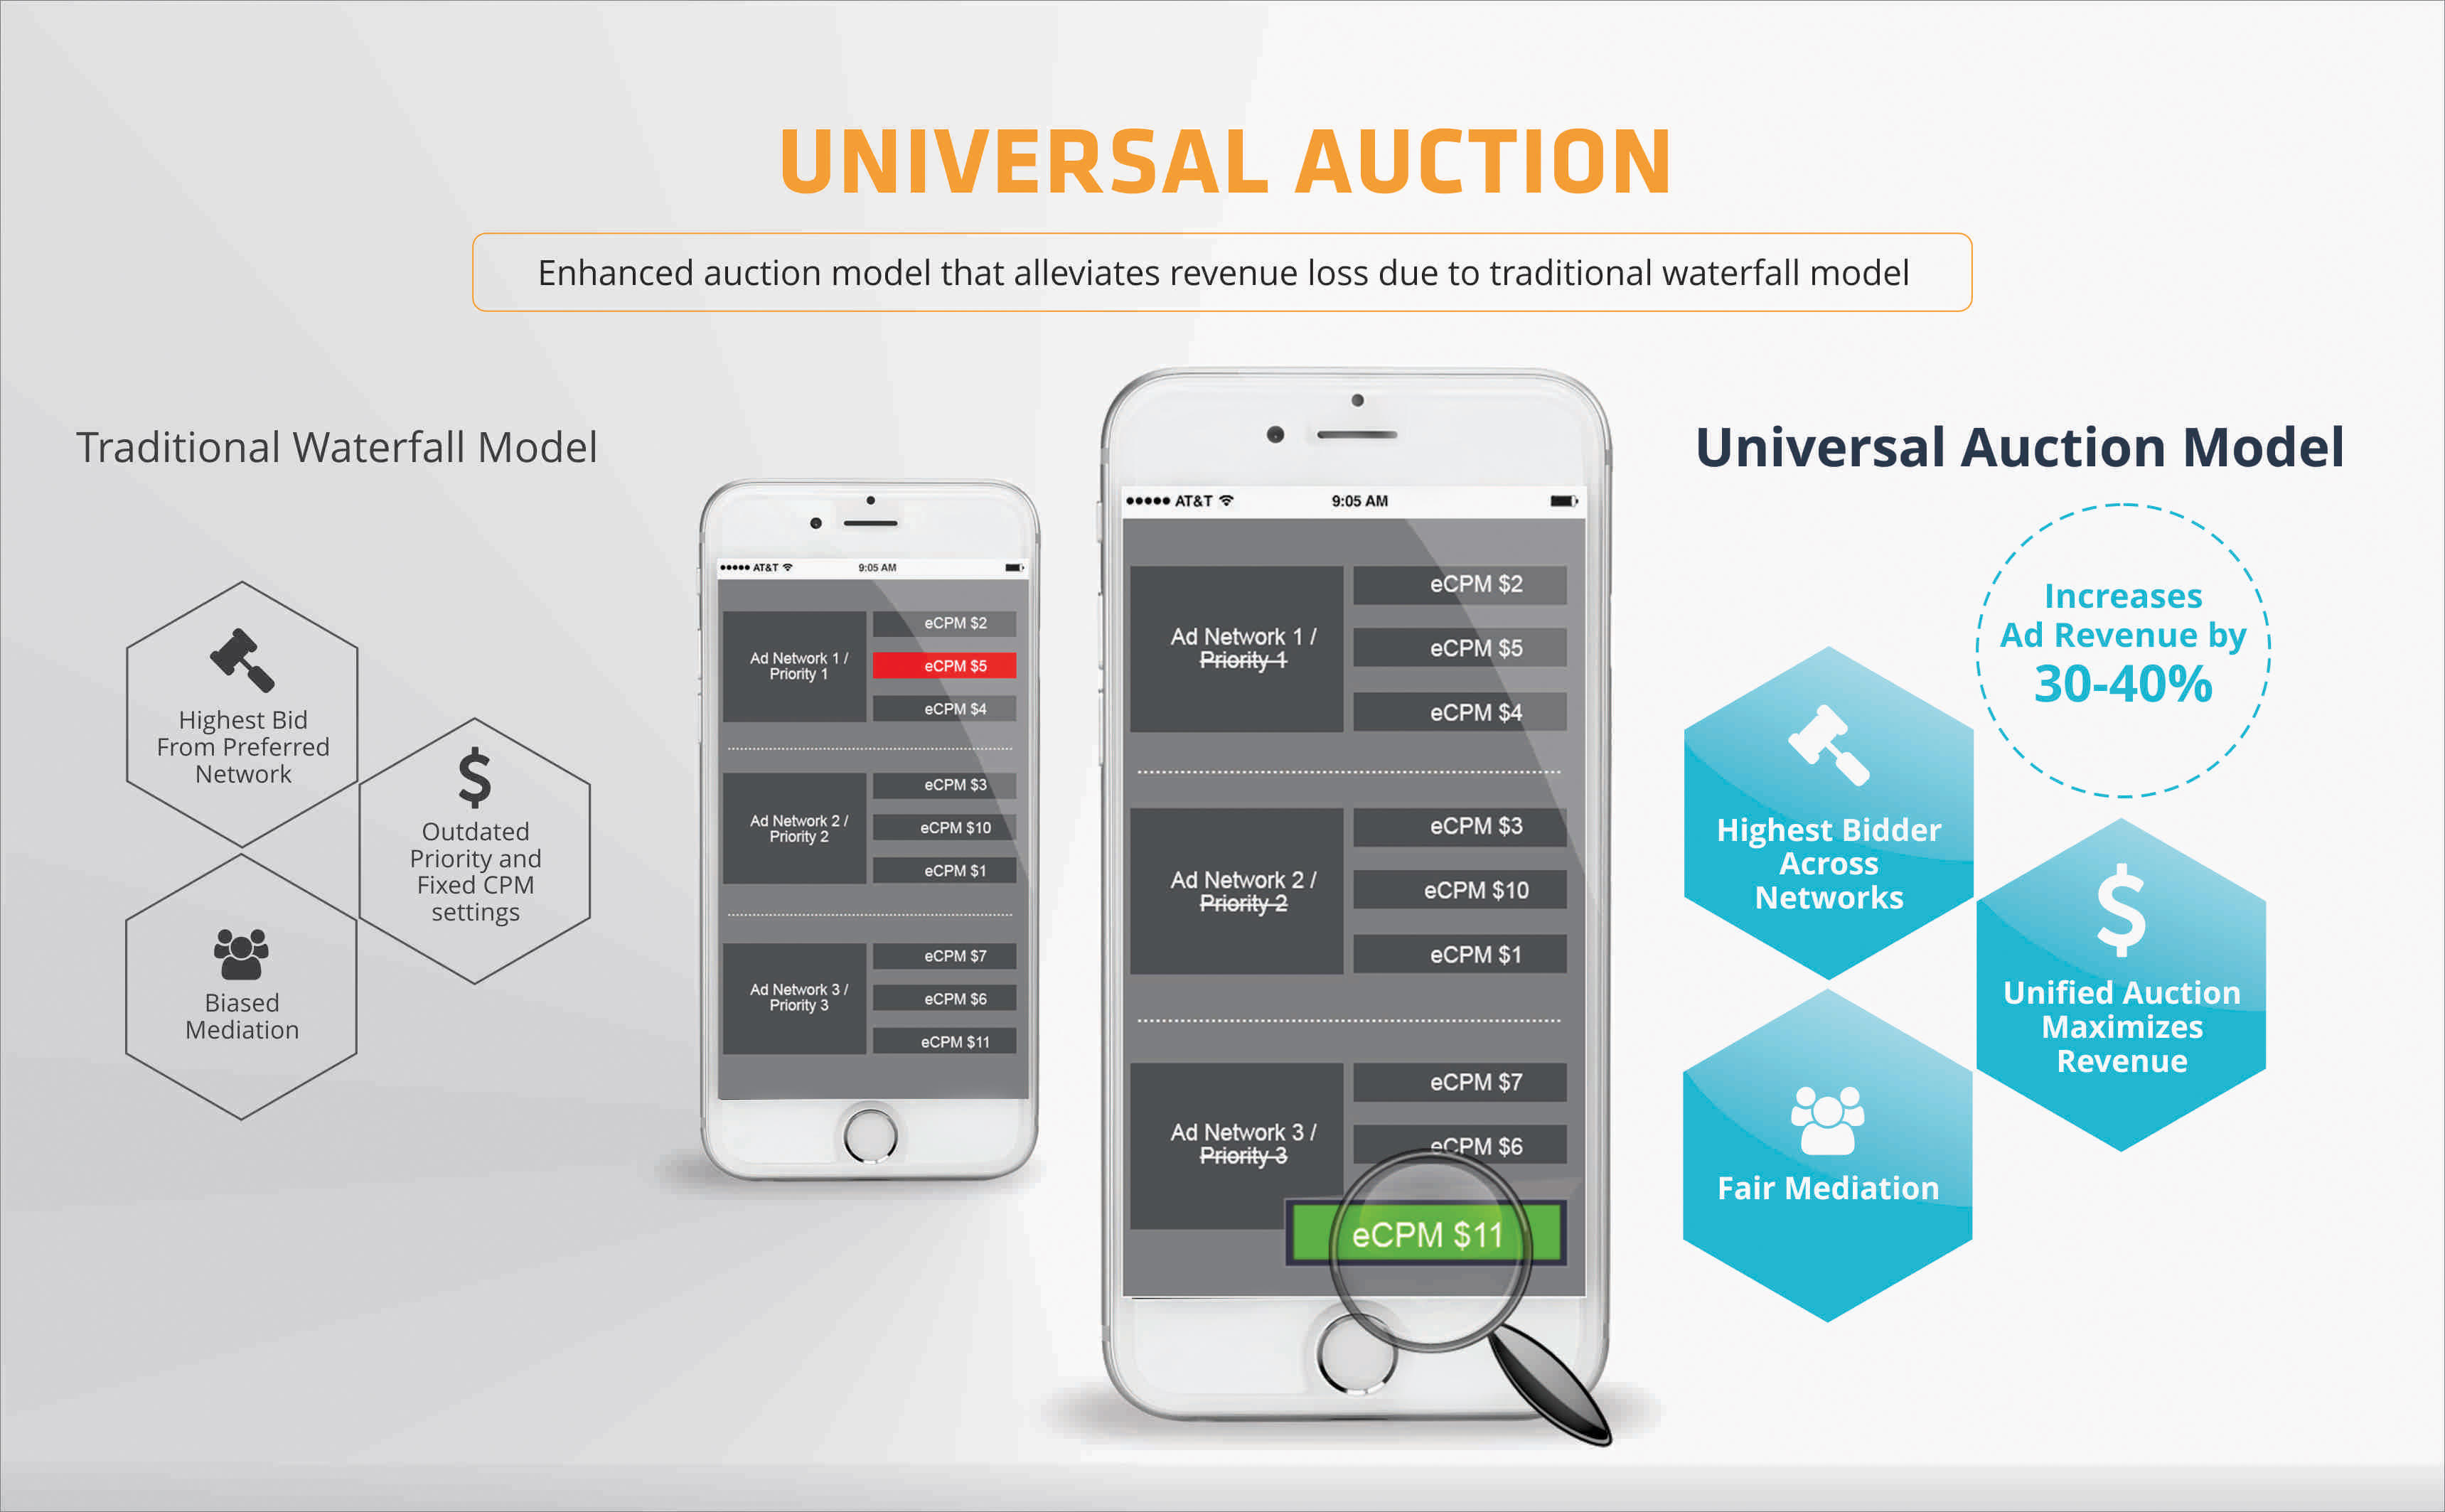 Universal Auction